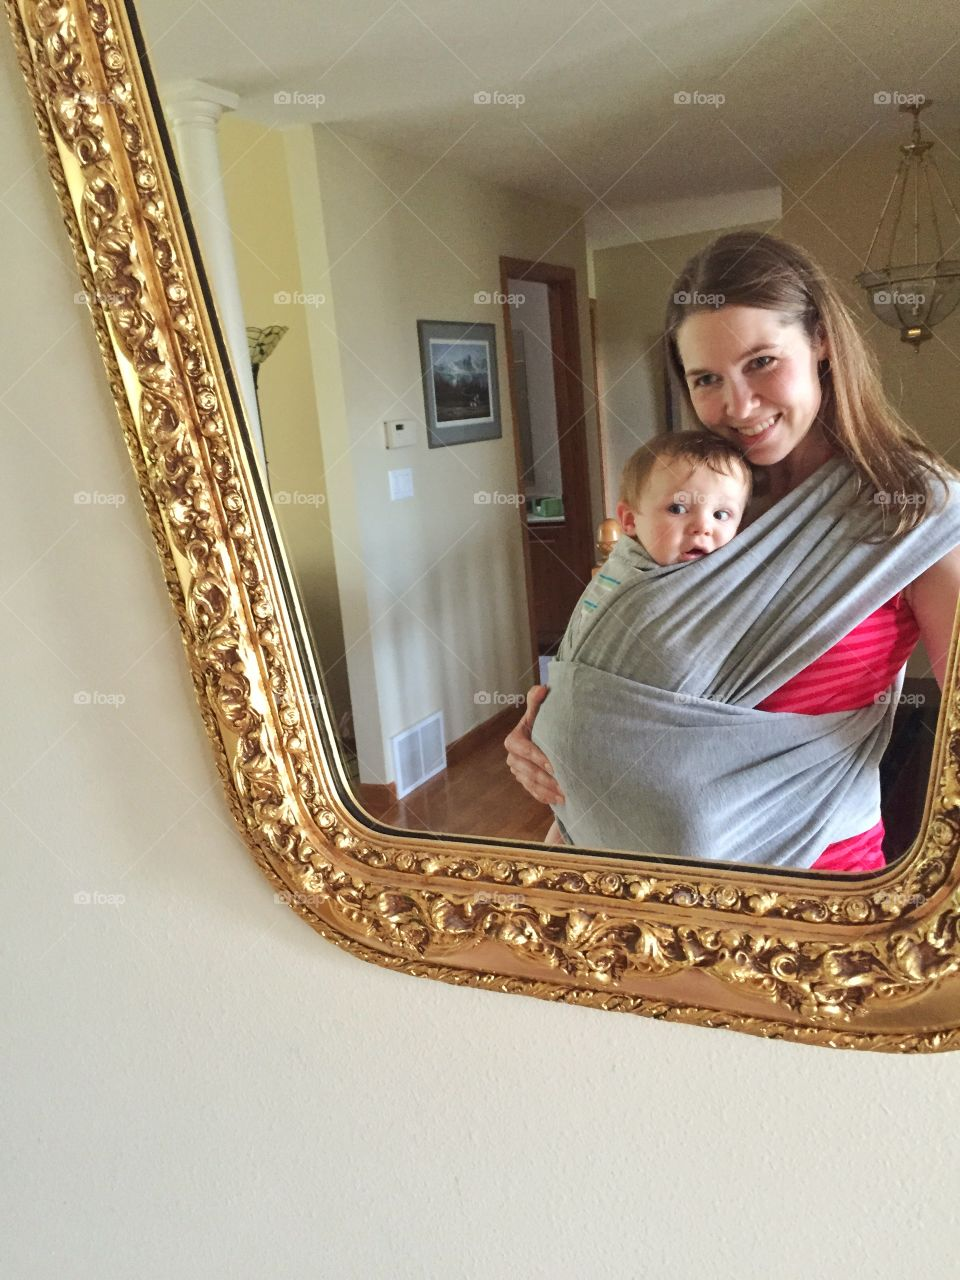 Reflection of mother carrying her cute baby boy in sling